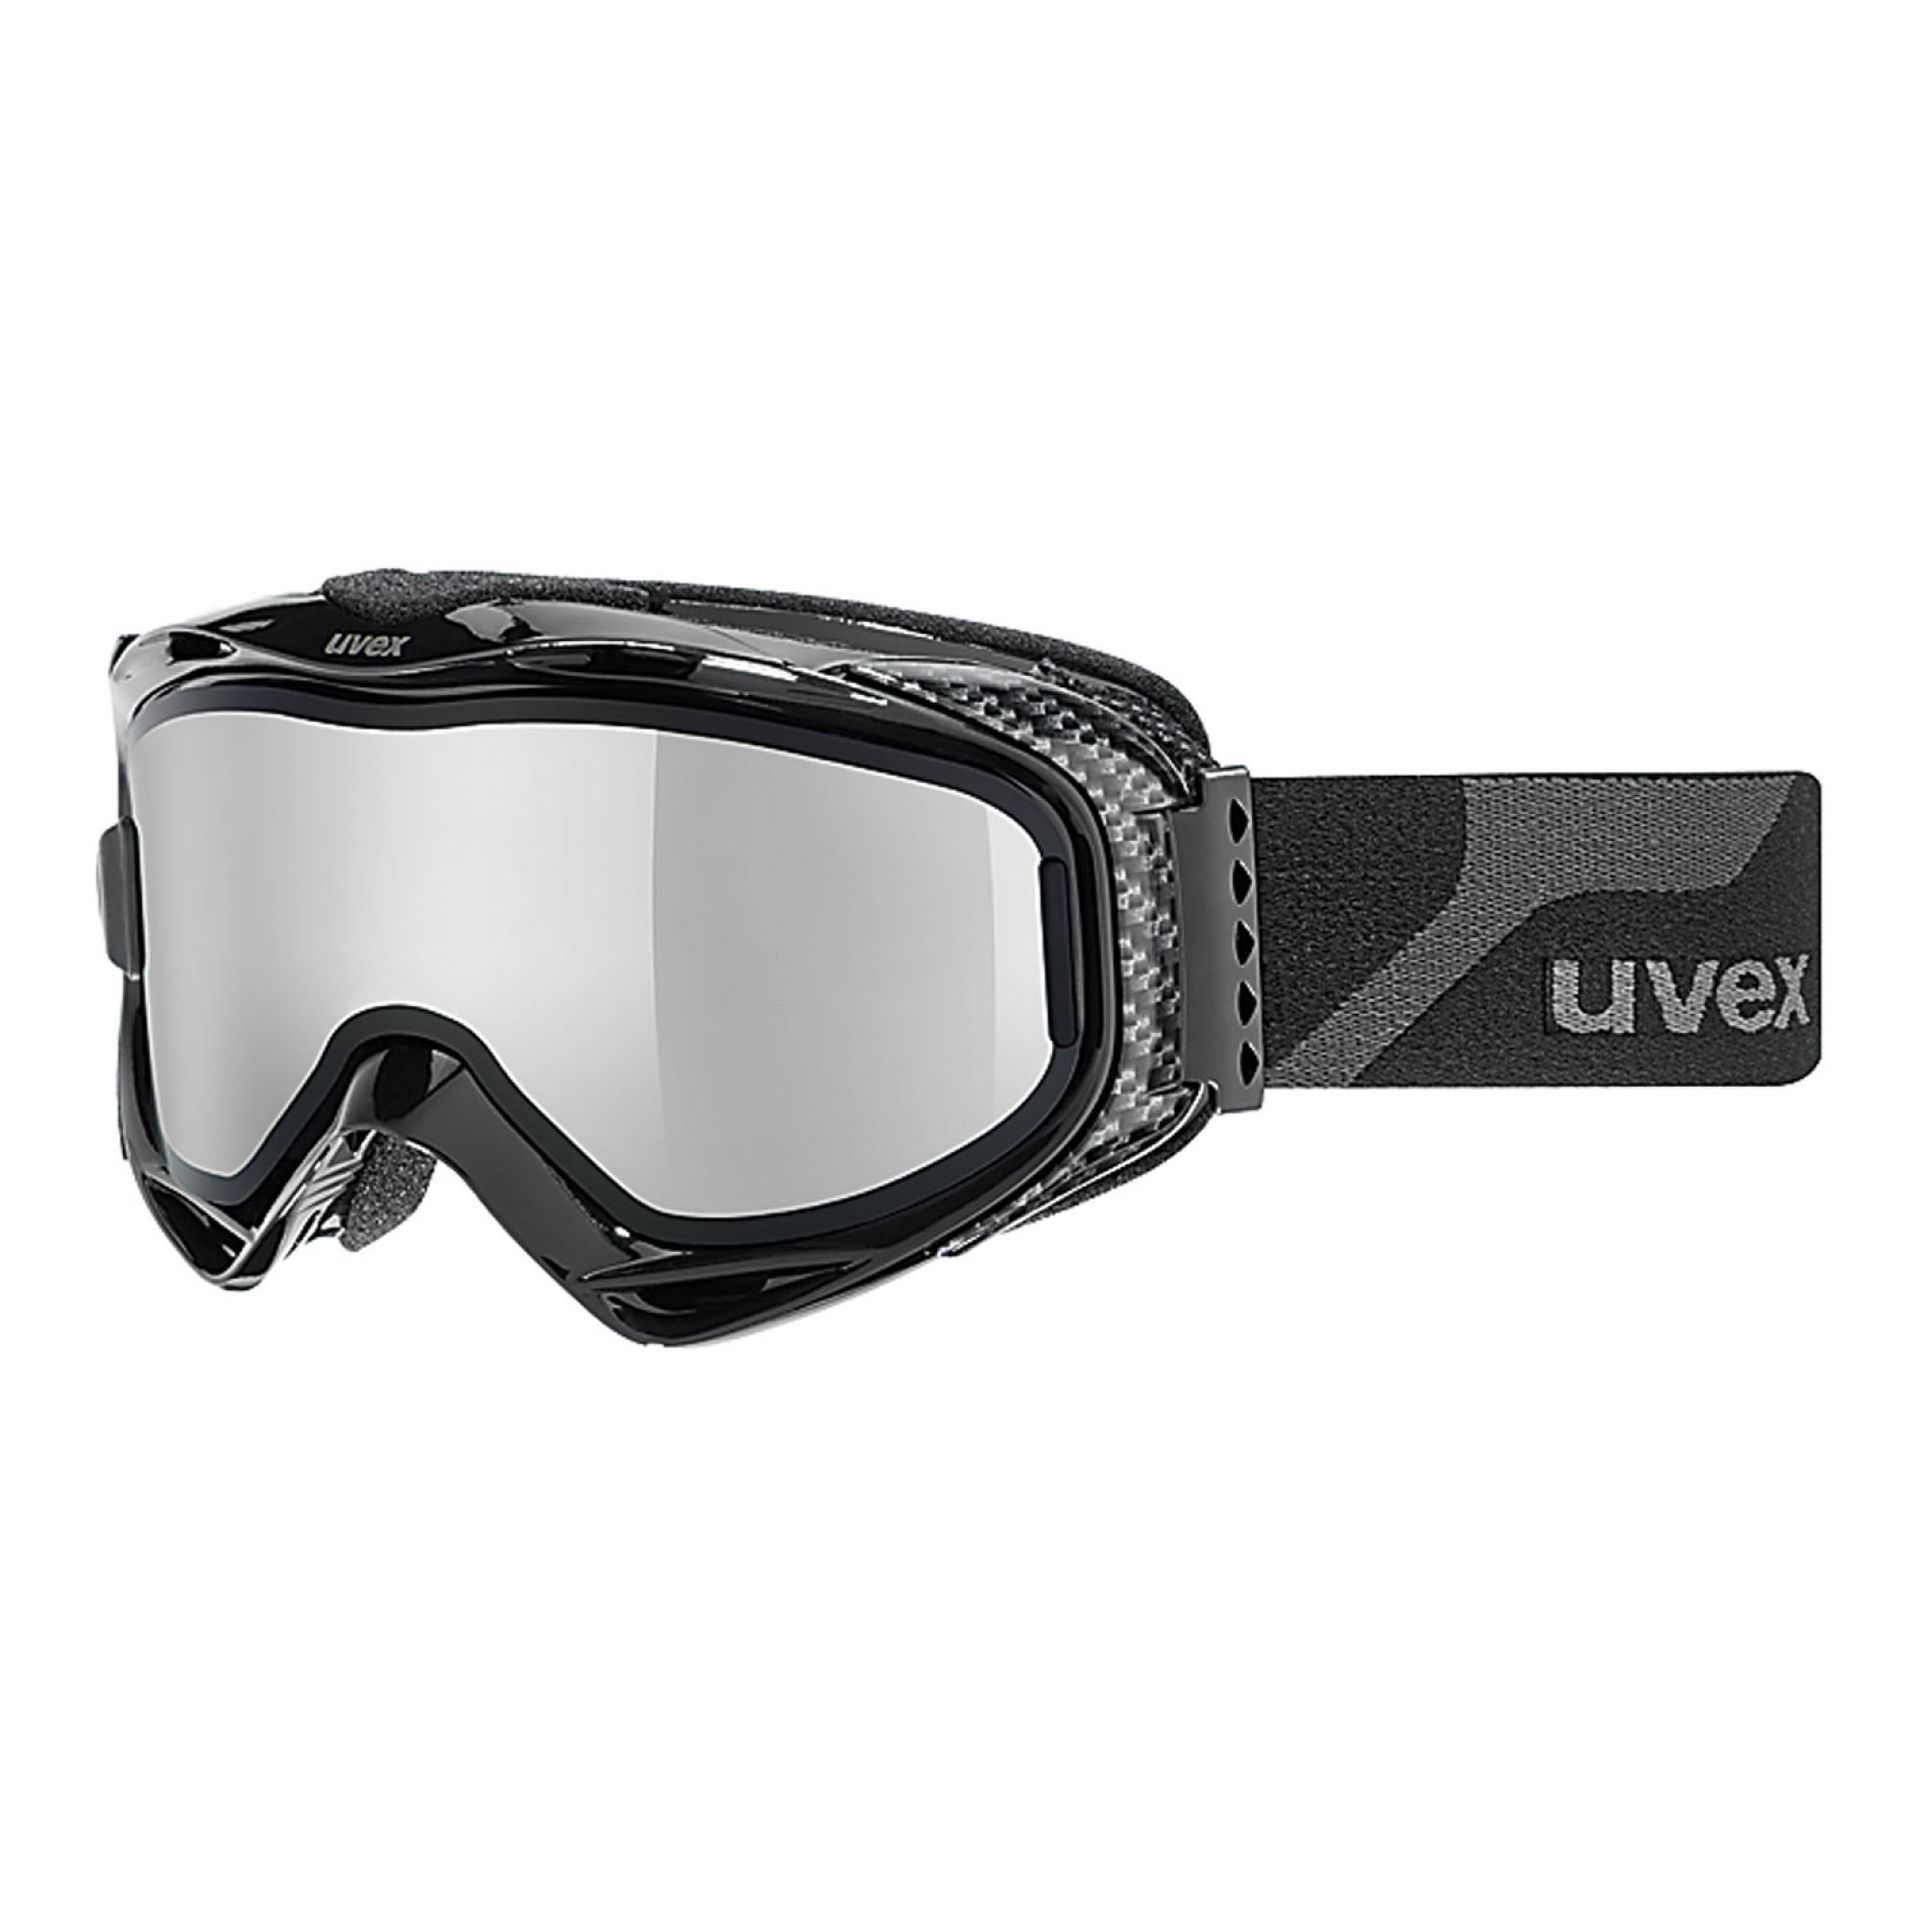 GOGLE UVEX G.GL 300 TOP BLACK